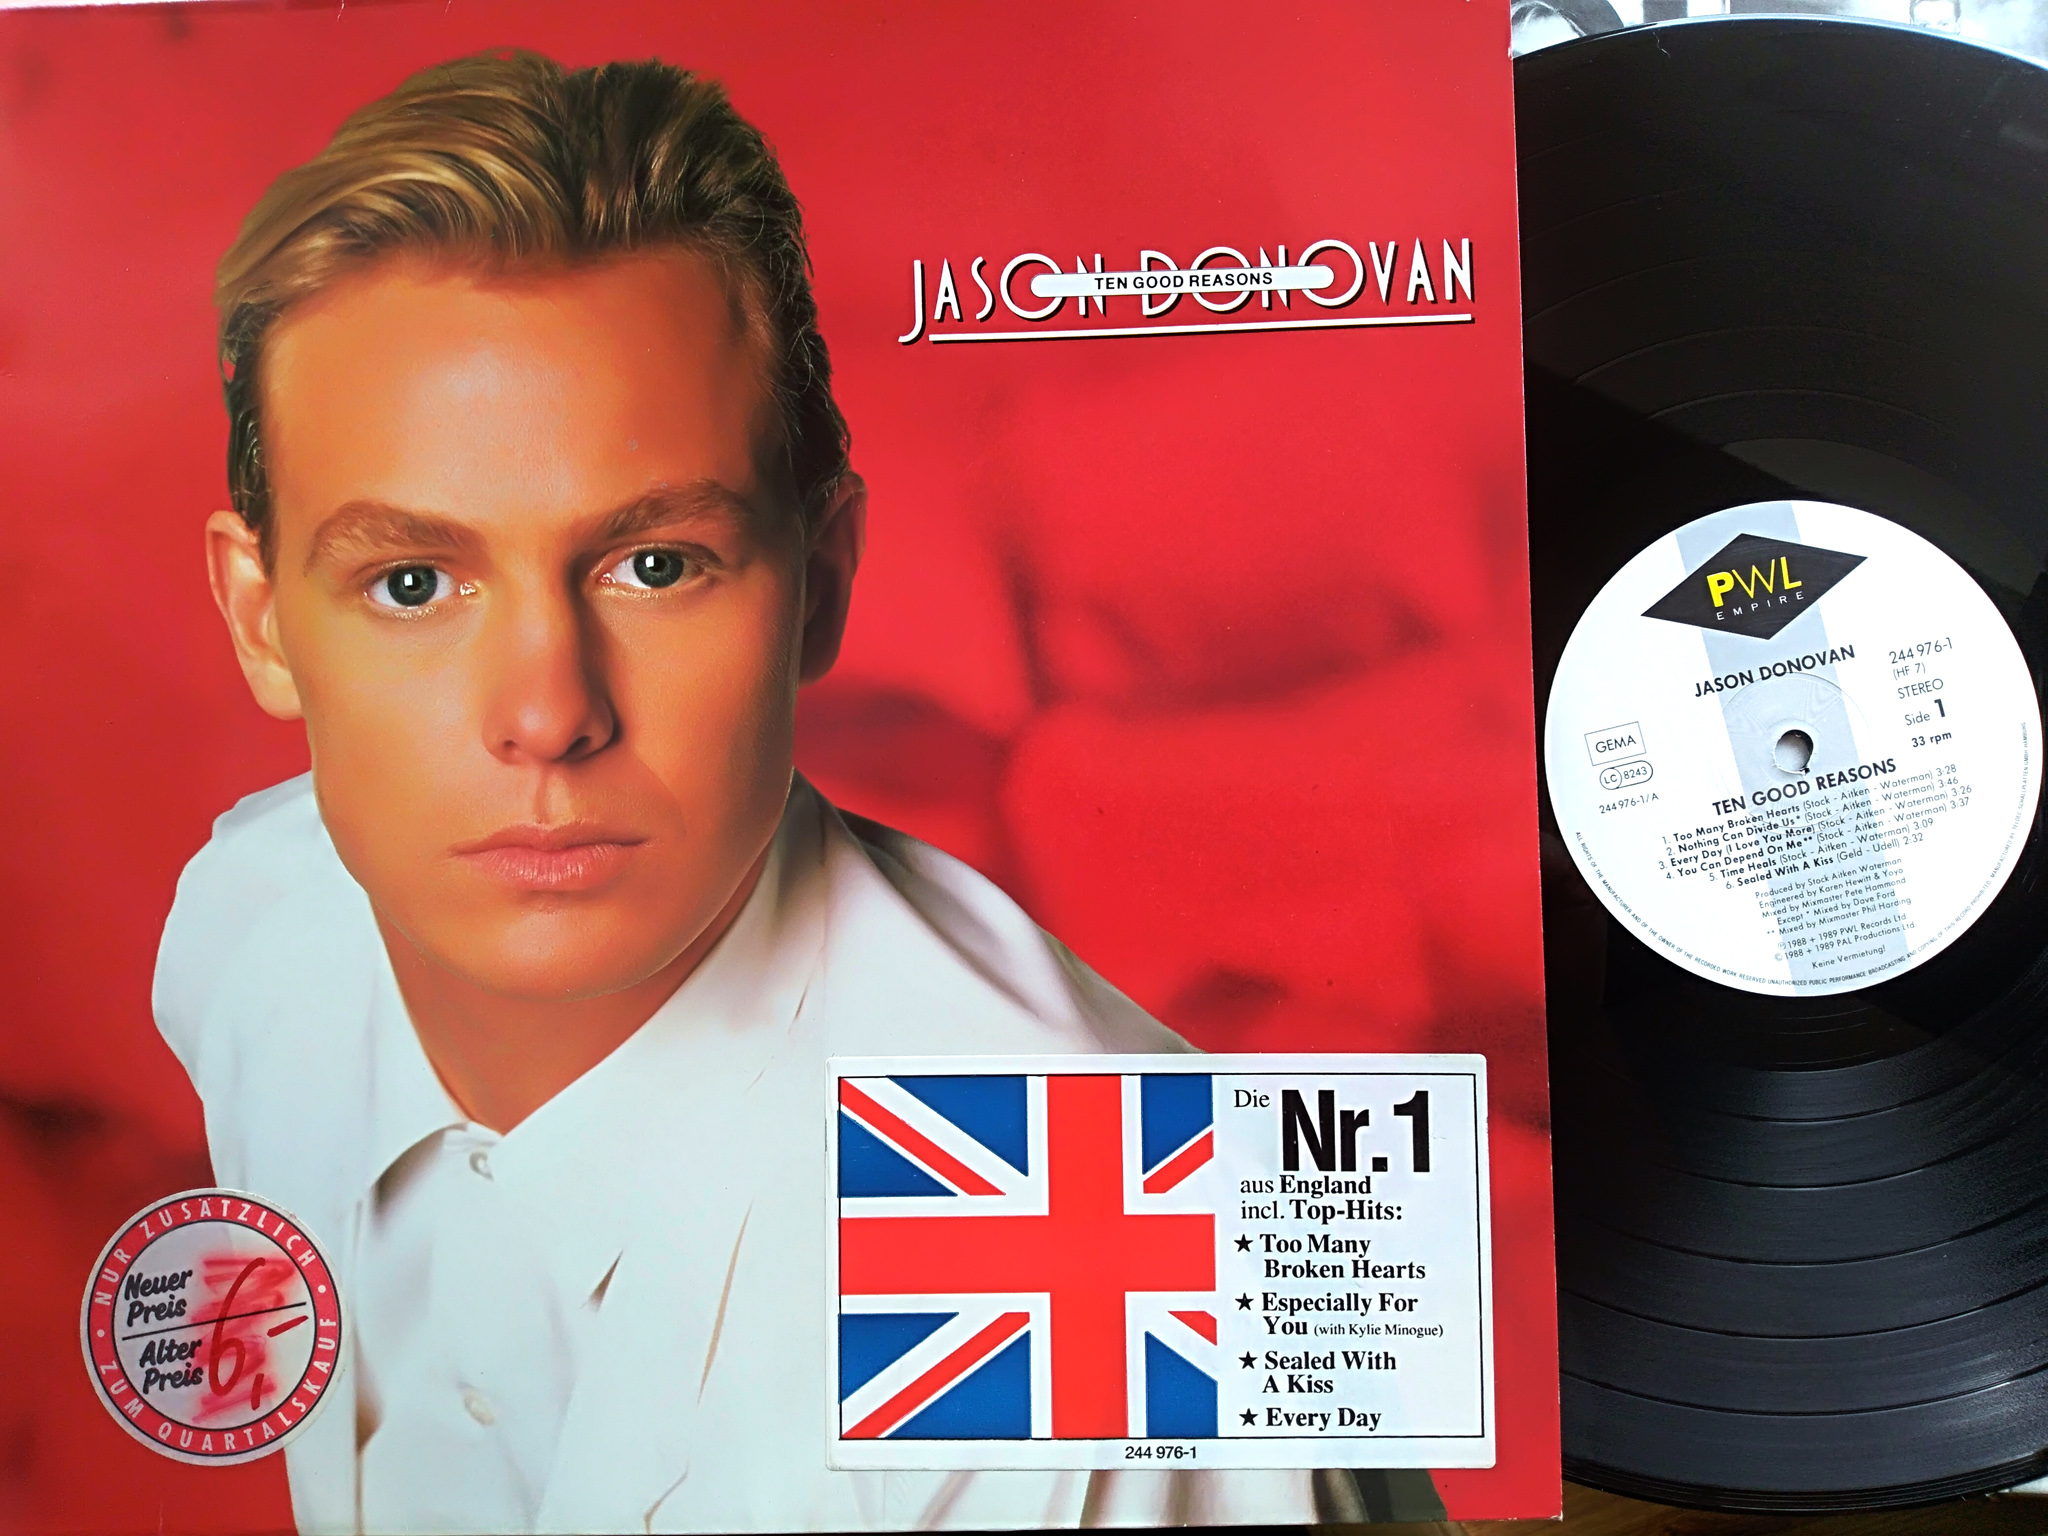 Jason Donovan - The Good Reasons LP